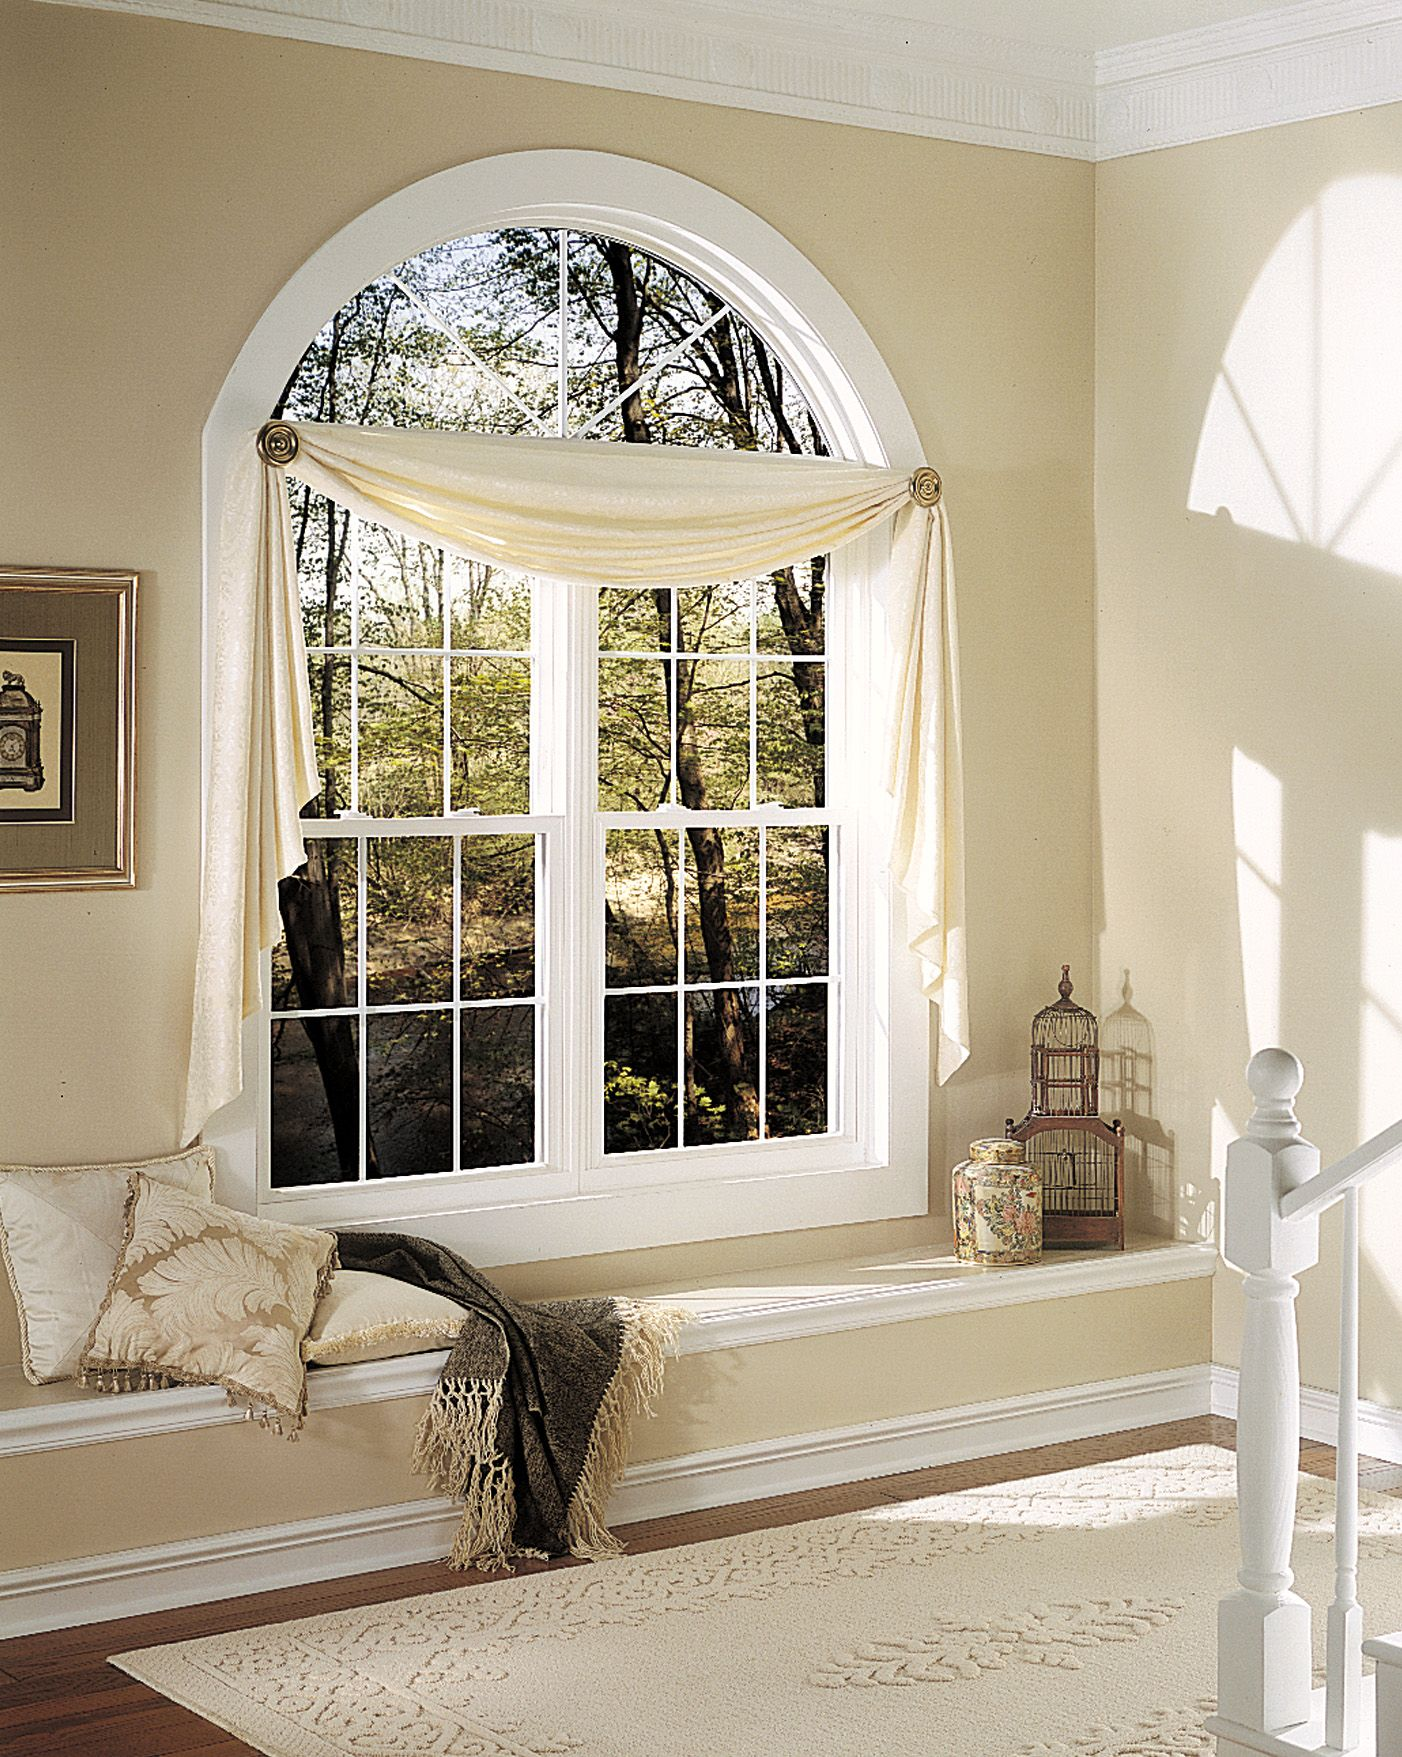 Photos Of Window Treatments For Round Top Windows Replace An